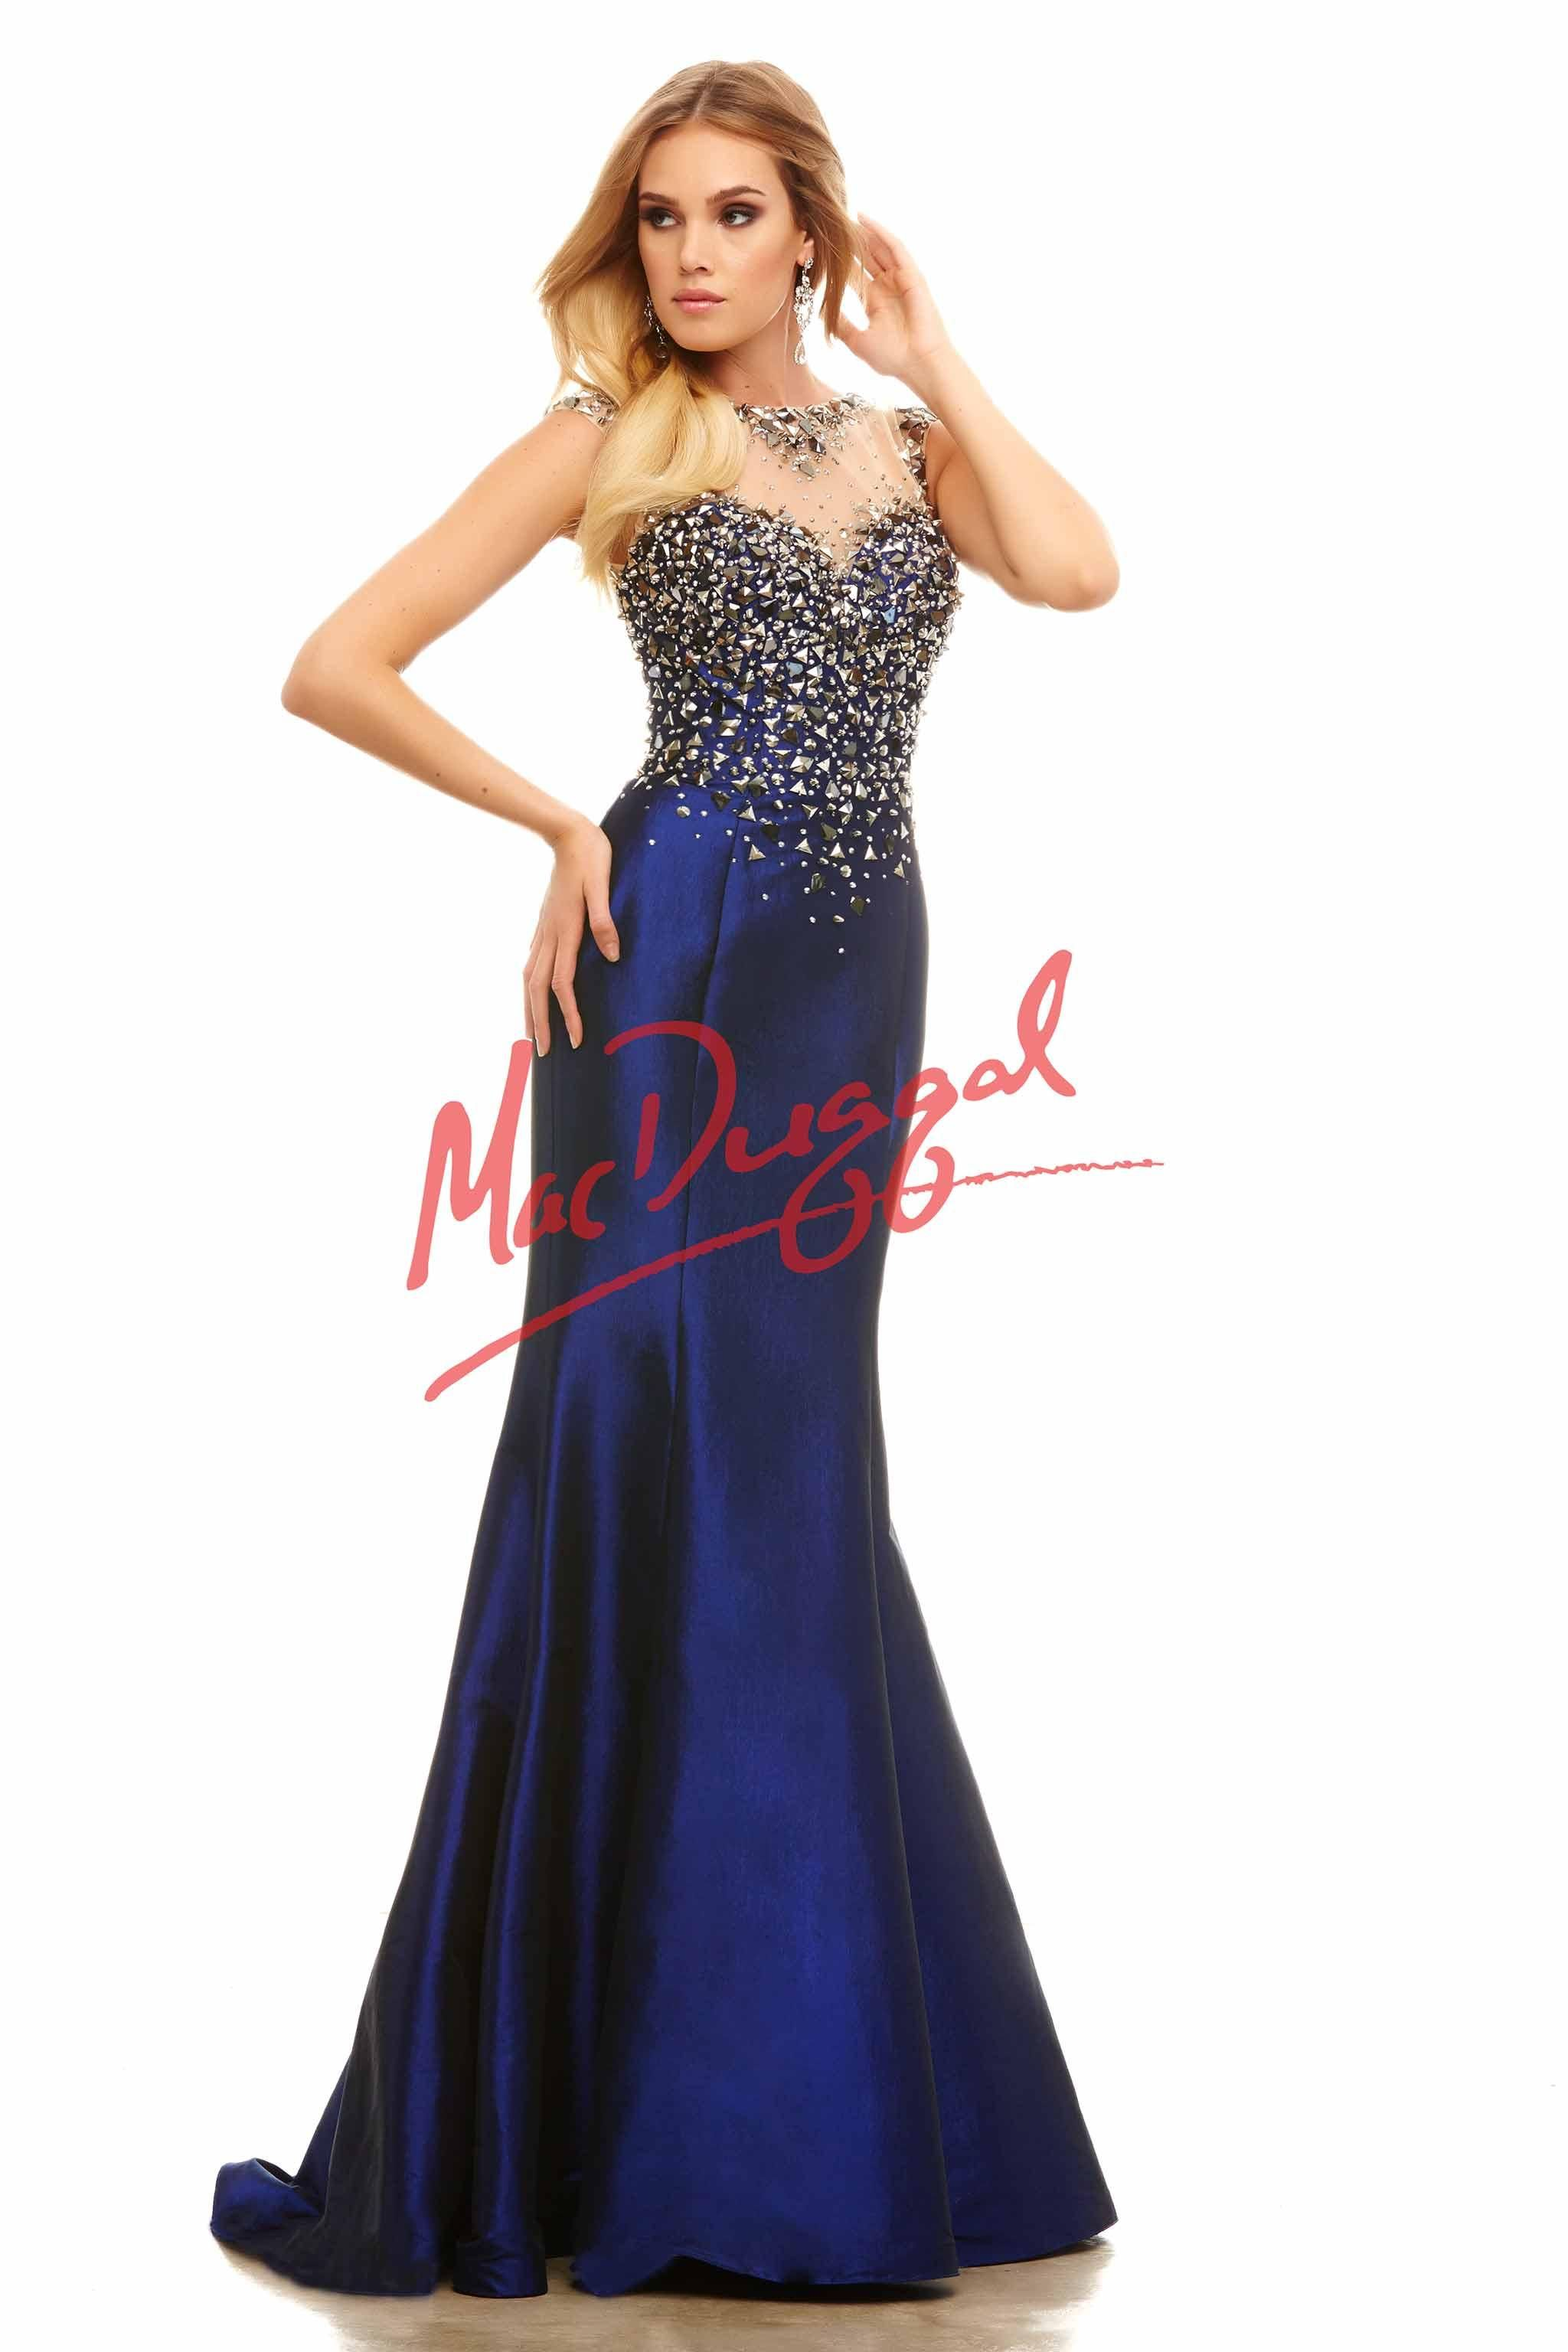 Style 82386A - Midnight | Gowns | Pinterest | Midnight blue, Style ...